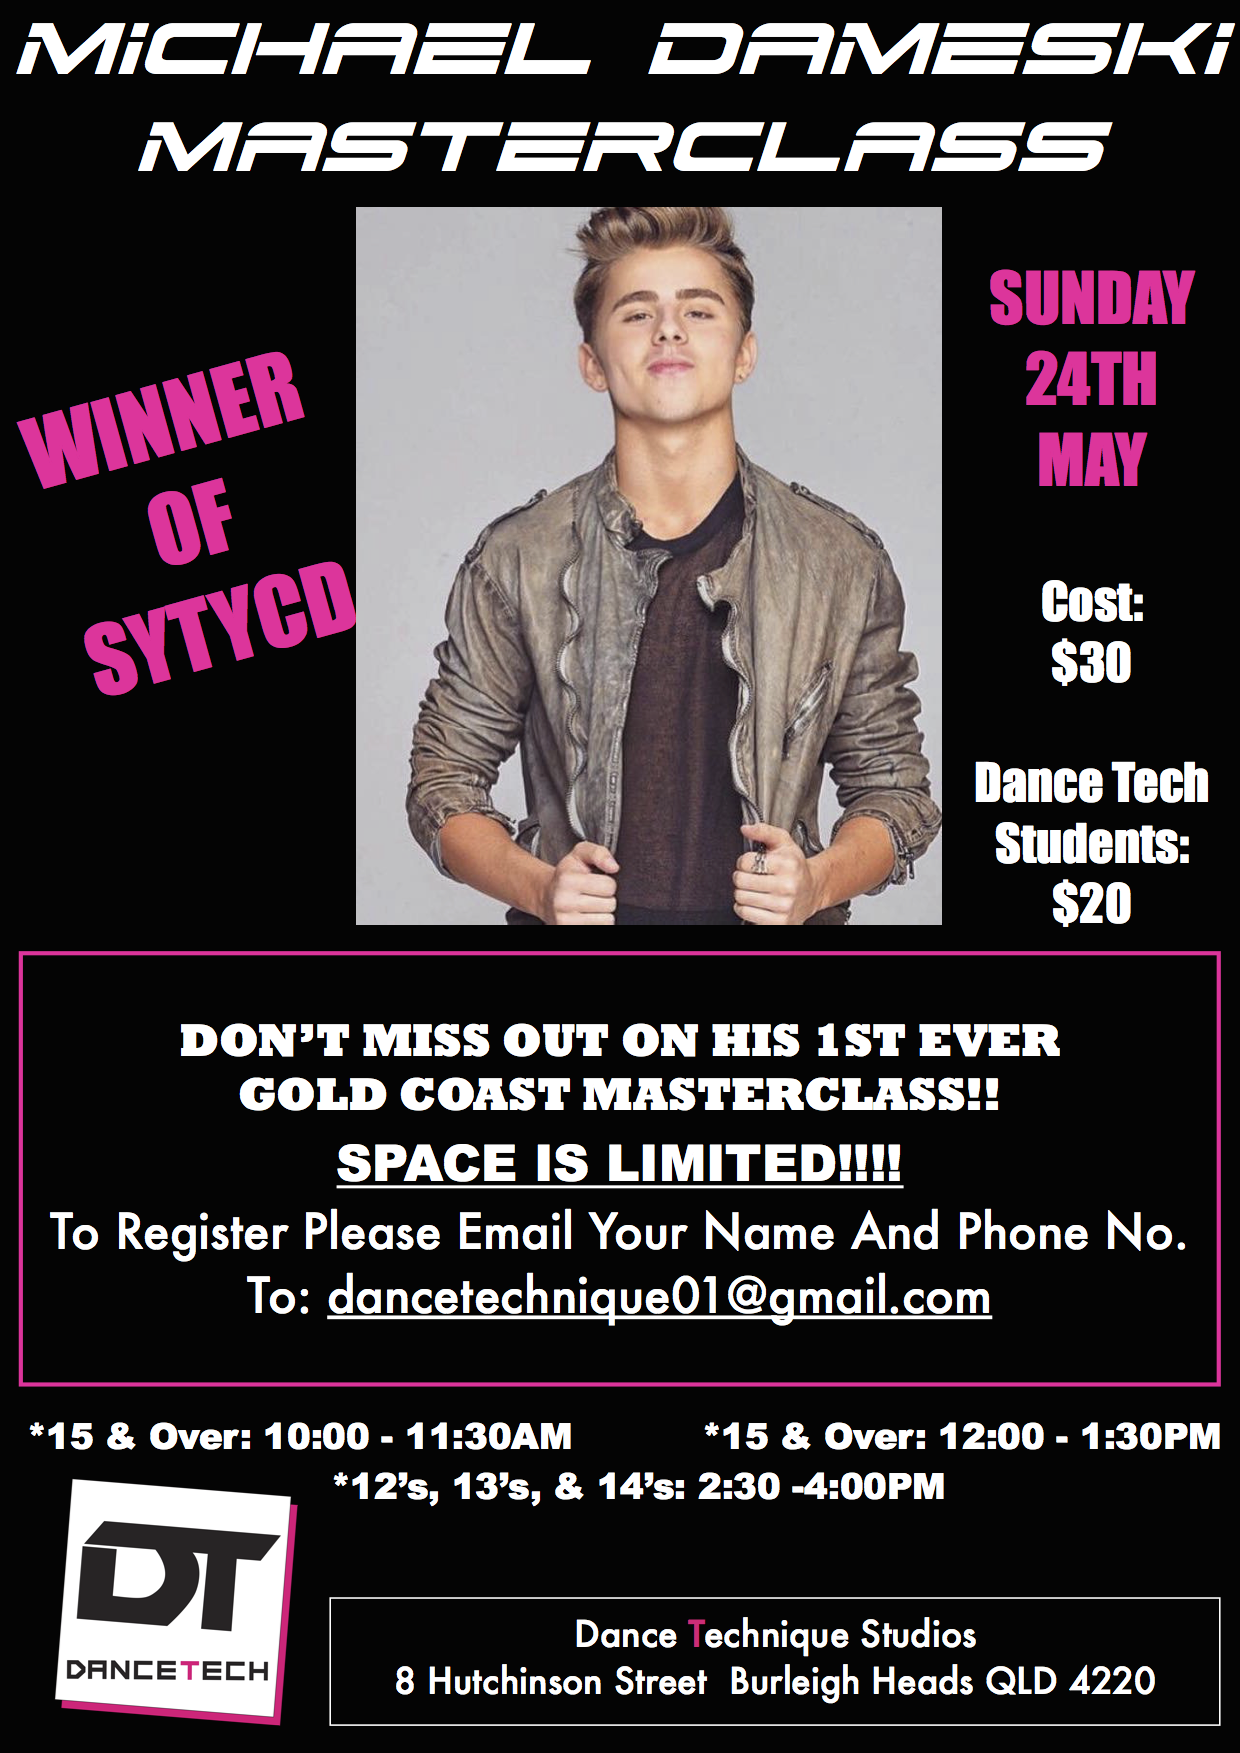 MICHAEL DAMESKI Workshop